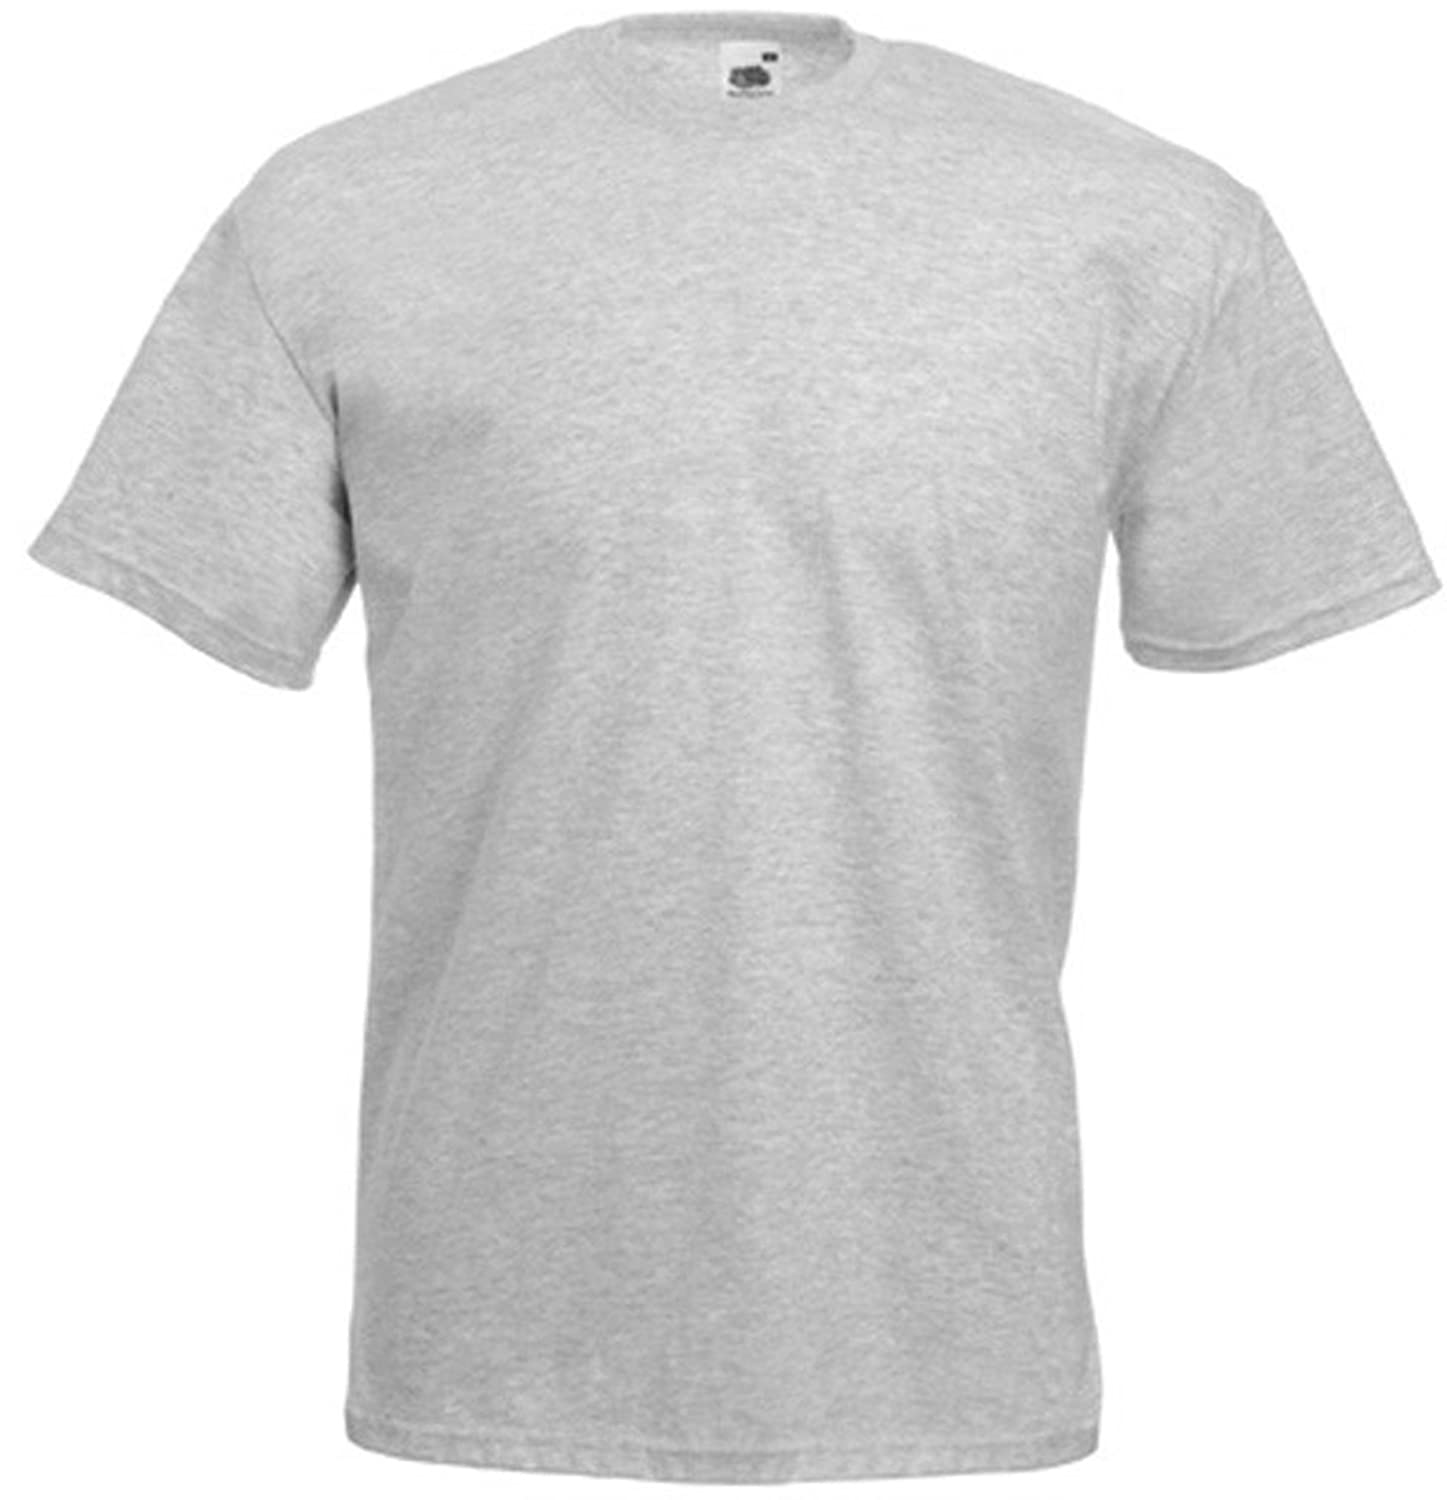 Black t shirt plain - Heather Grey T Shirt Plain Tee Apparel Clothing Top Gift For Him Or Her